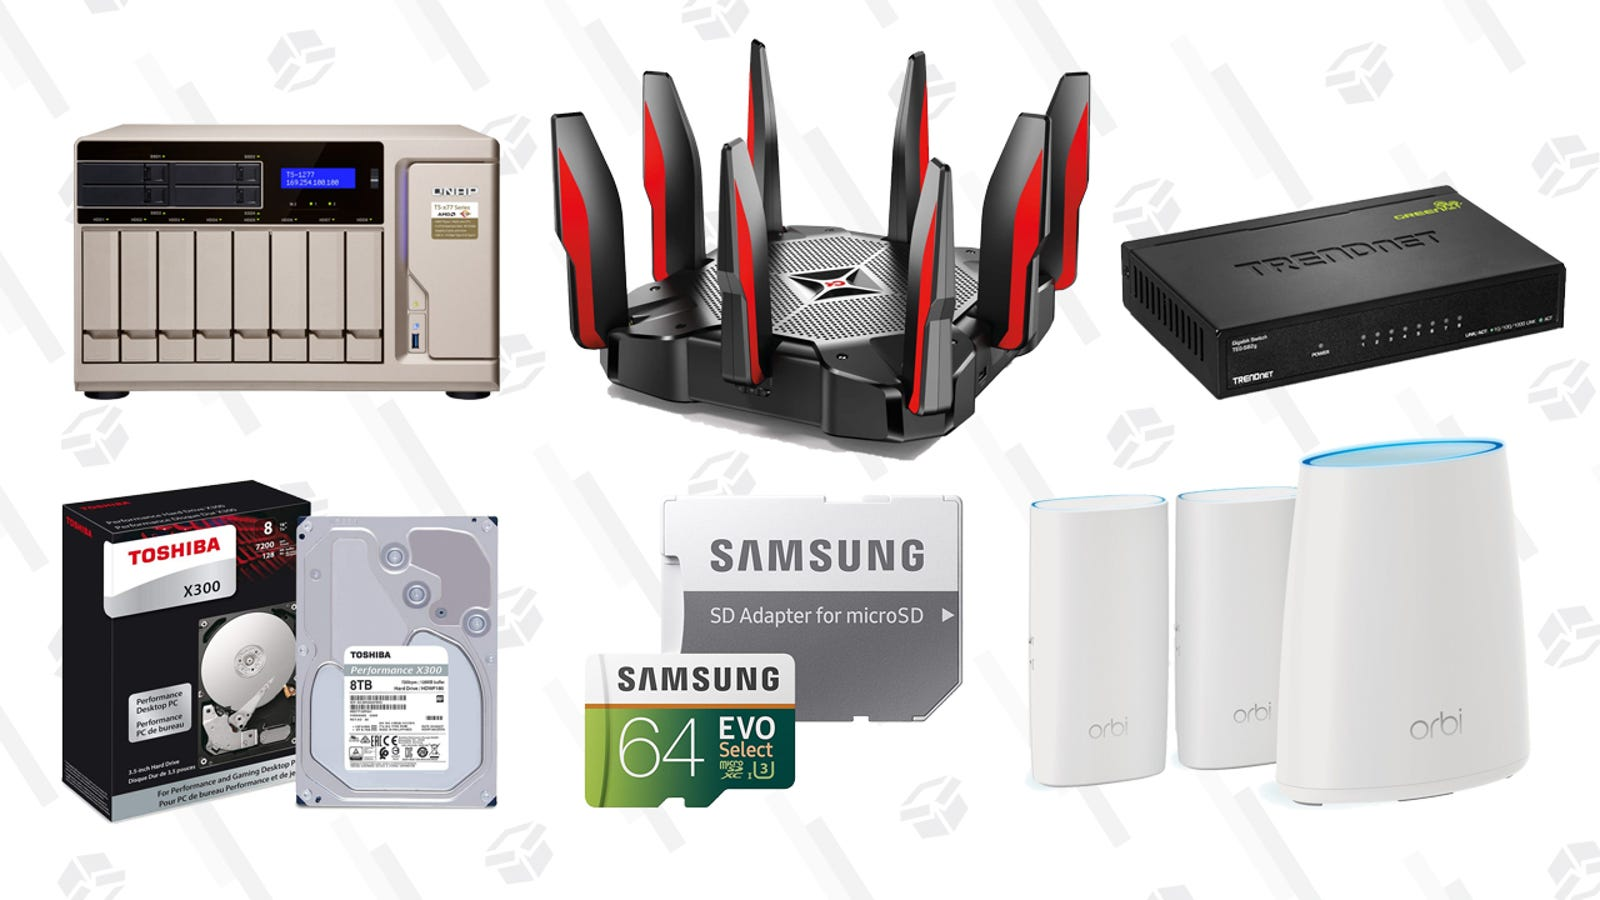 Theres something for everyone in this networking and storage gold box